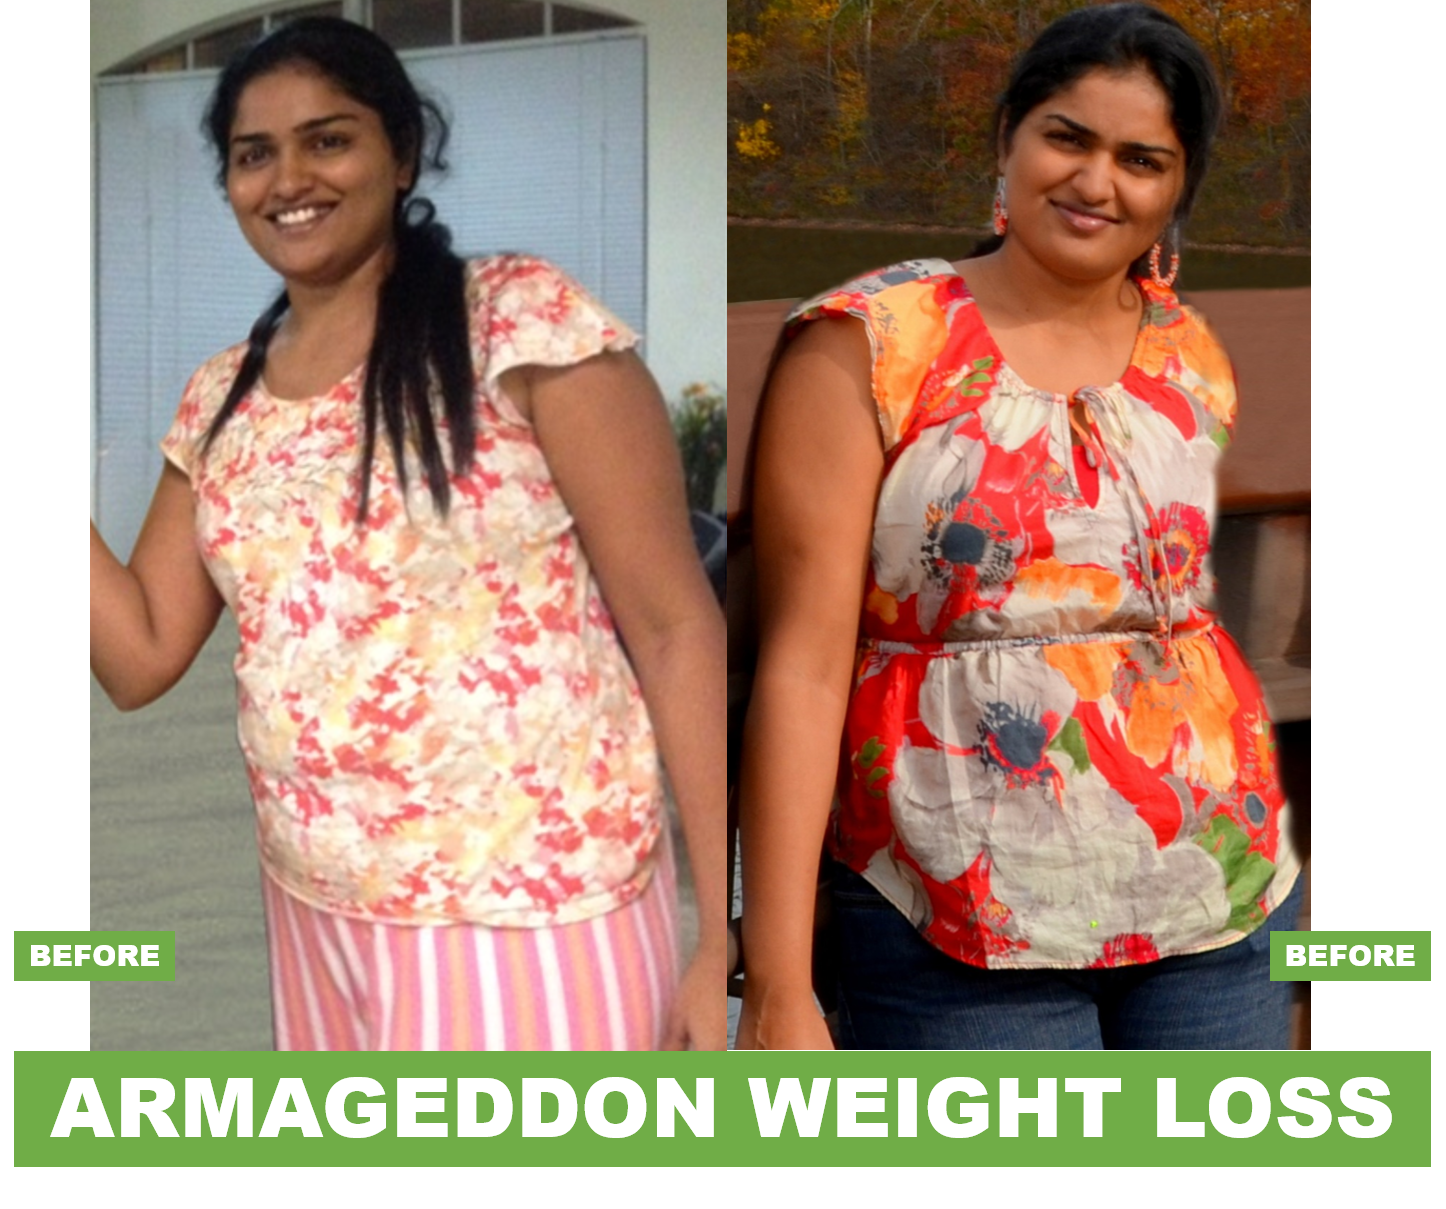 Manasa Reddy - Armageddon Weight Loss DVD Program - Best weight loss DVD for women and men - Best exercise DVD program - post pregnancy weight loss program 1